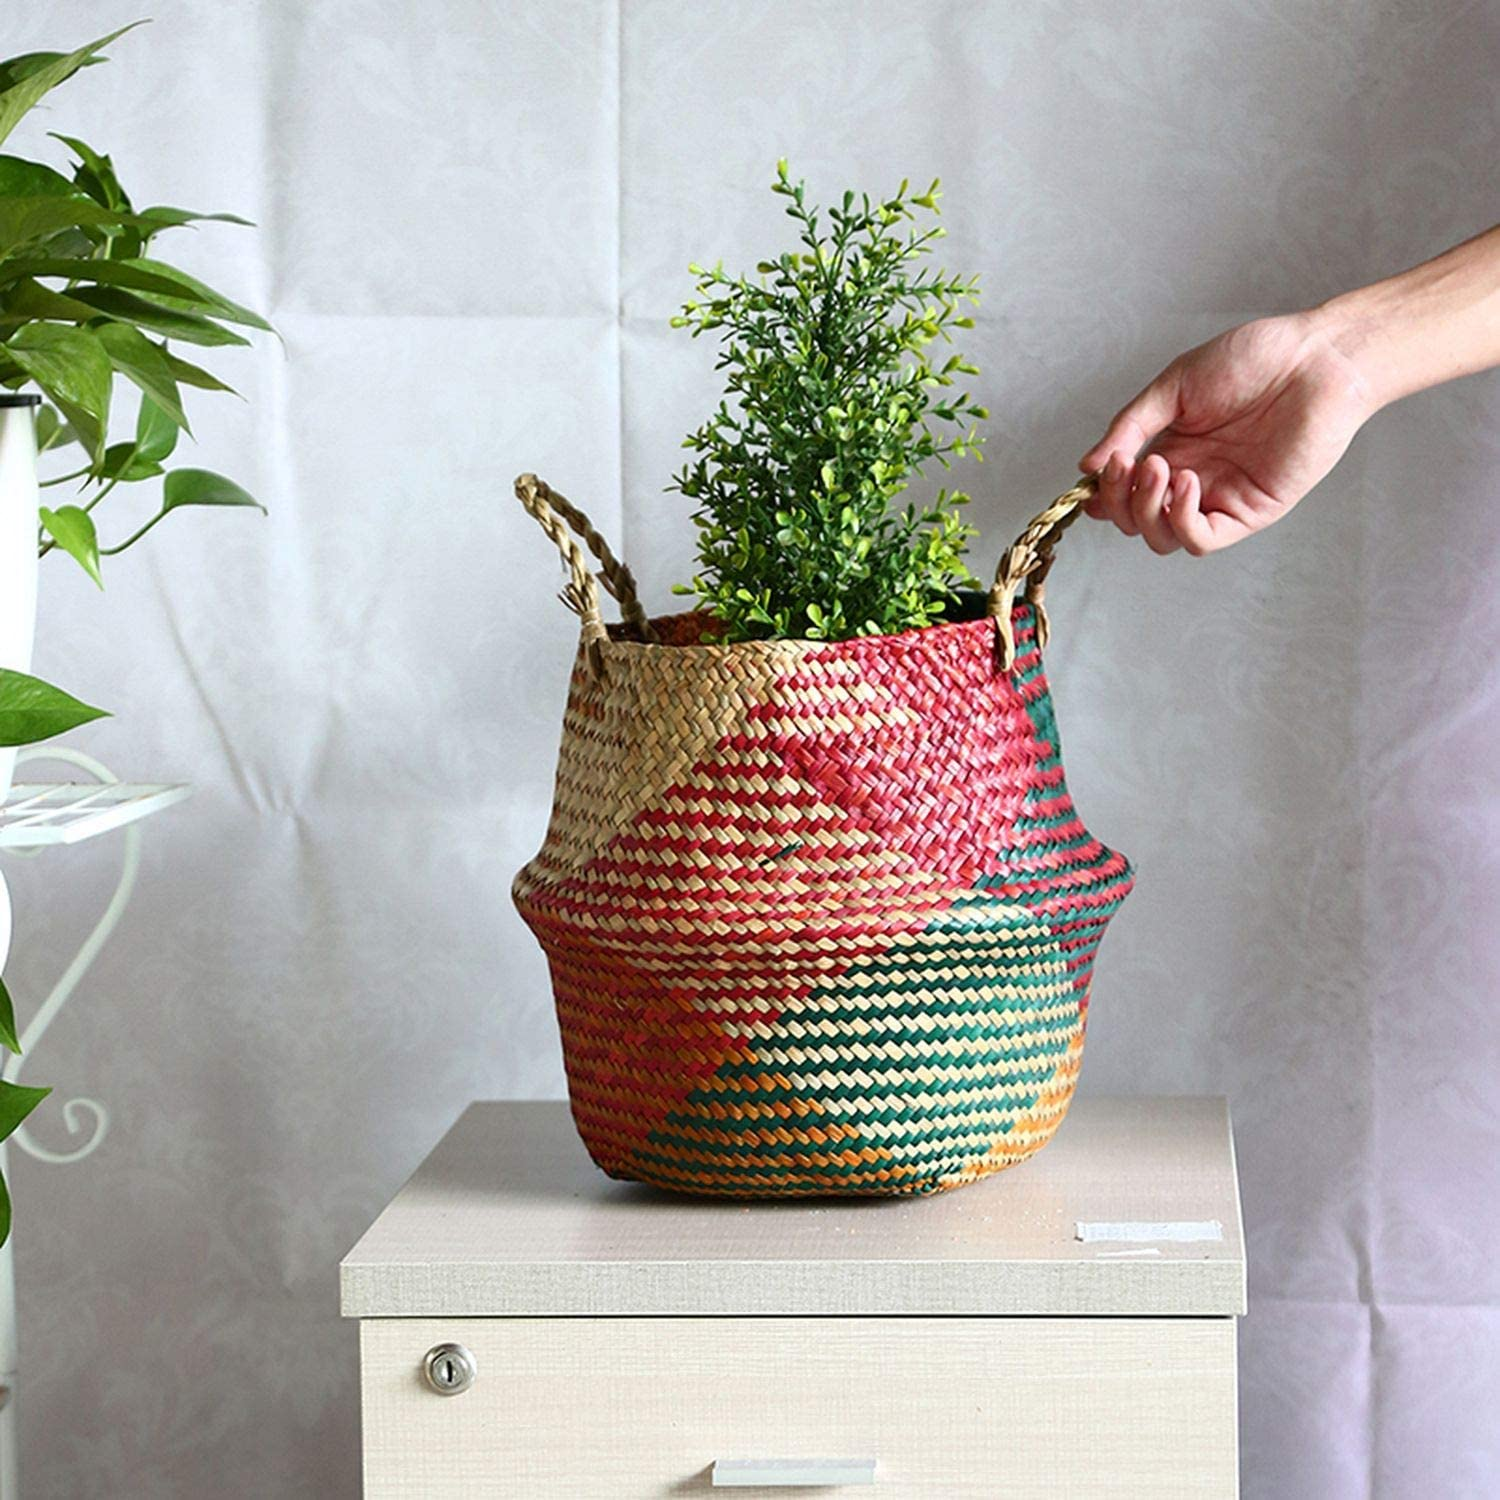 17/'/'x11/'/' Foldable Belly Seagrass Woven Plant Flower Basket Storage Shopping